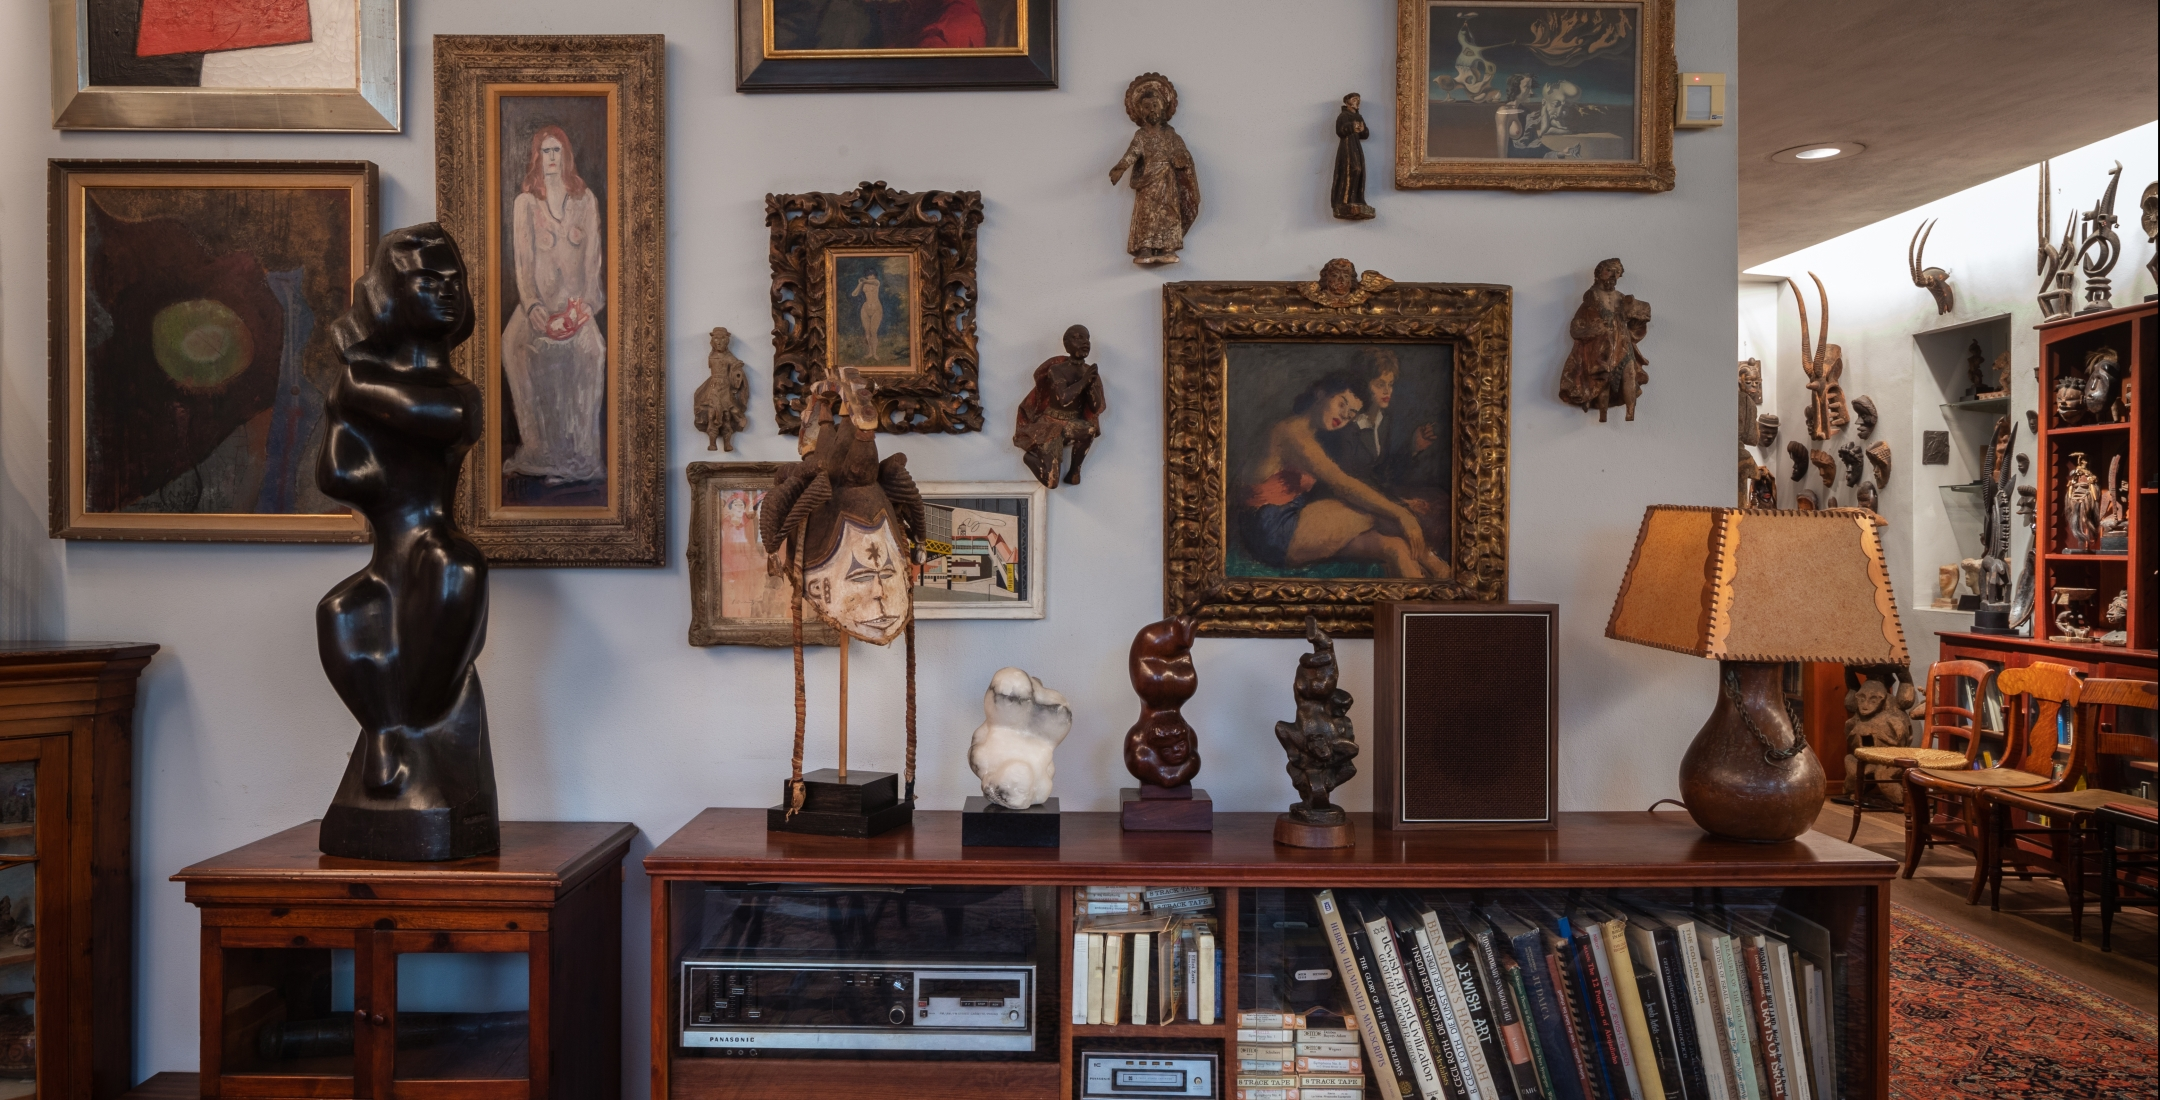 On a wooden table are various small sculptures and a brown lamp. On the grey wall are small mounted sculptures and various paintings of different sizes. The photo reveals a row of chairs and more mounted sculptures in the distance, around the corner.